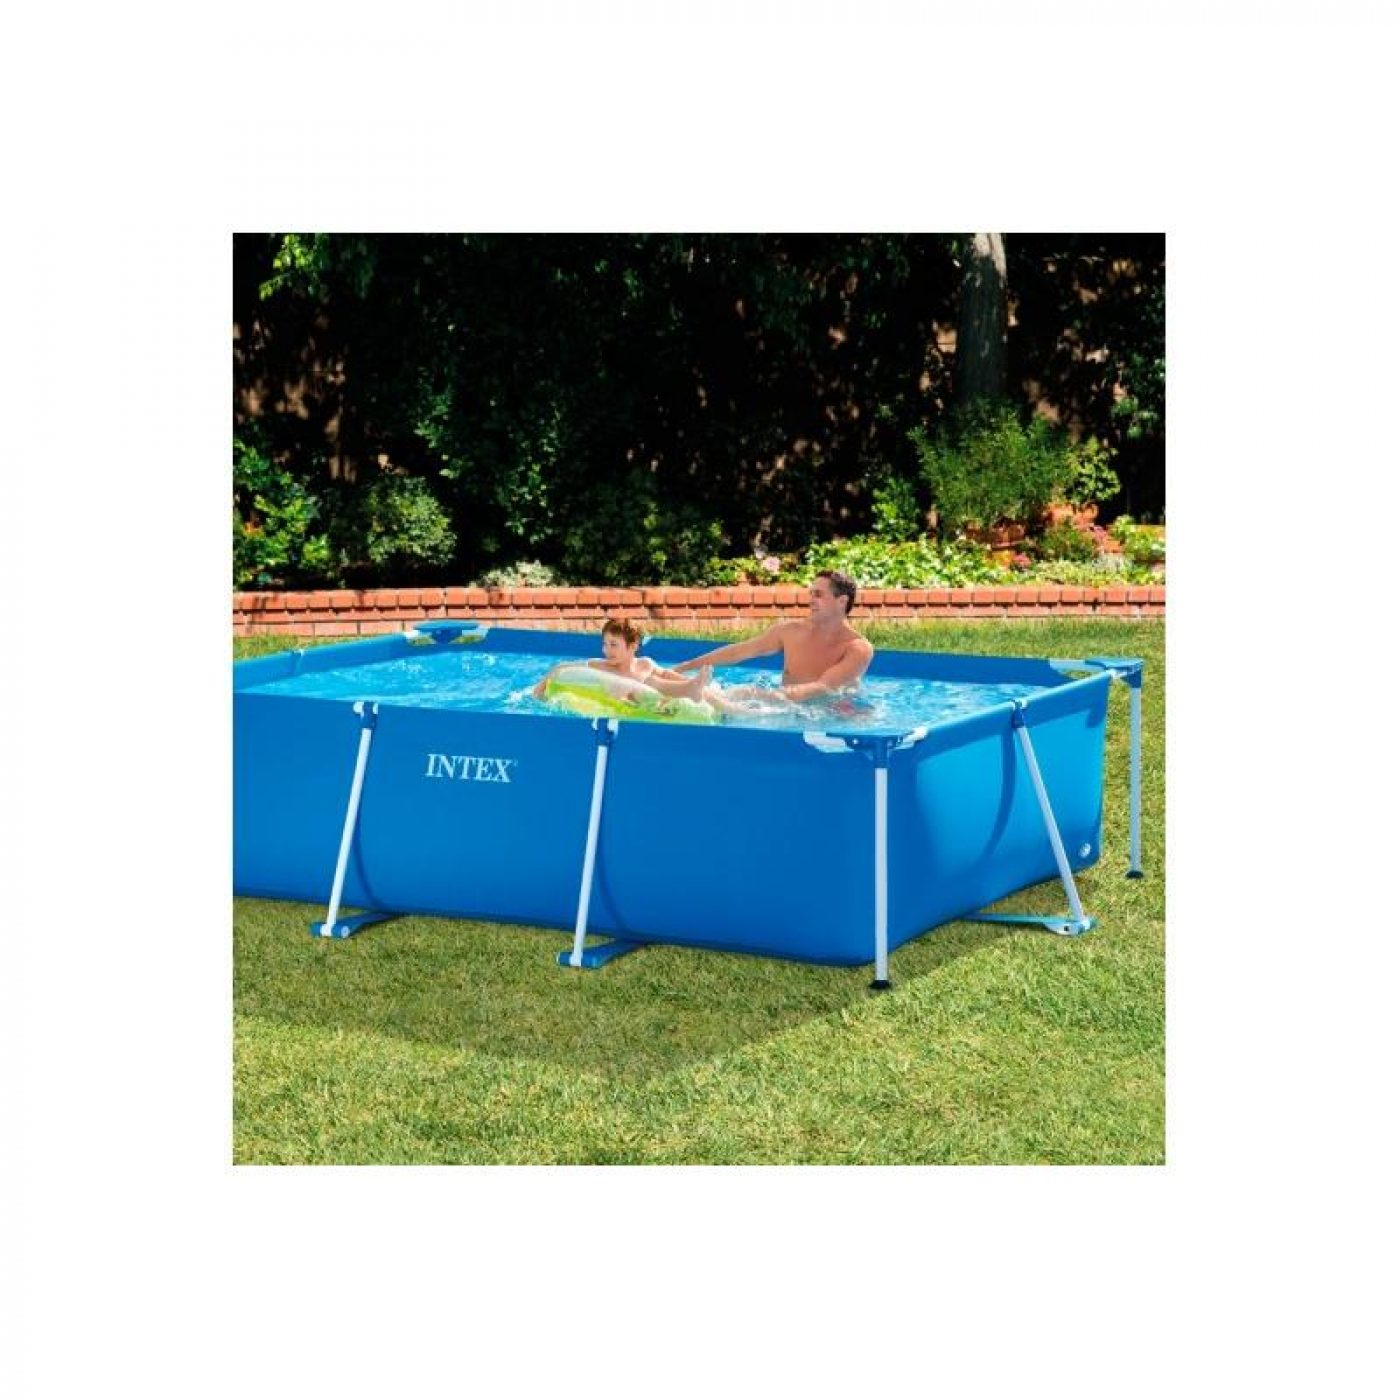 Piscina small frame 300 x 200 x 75 cm intex por 99 95 en for Piscina desmontable rectangular